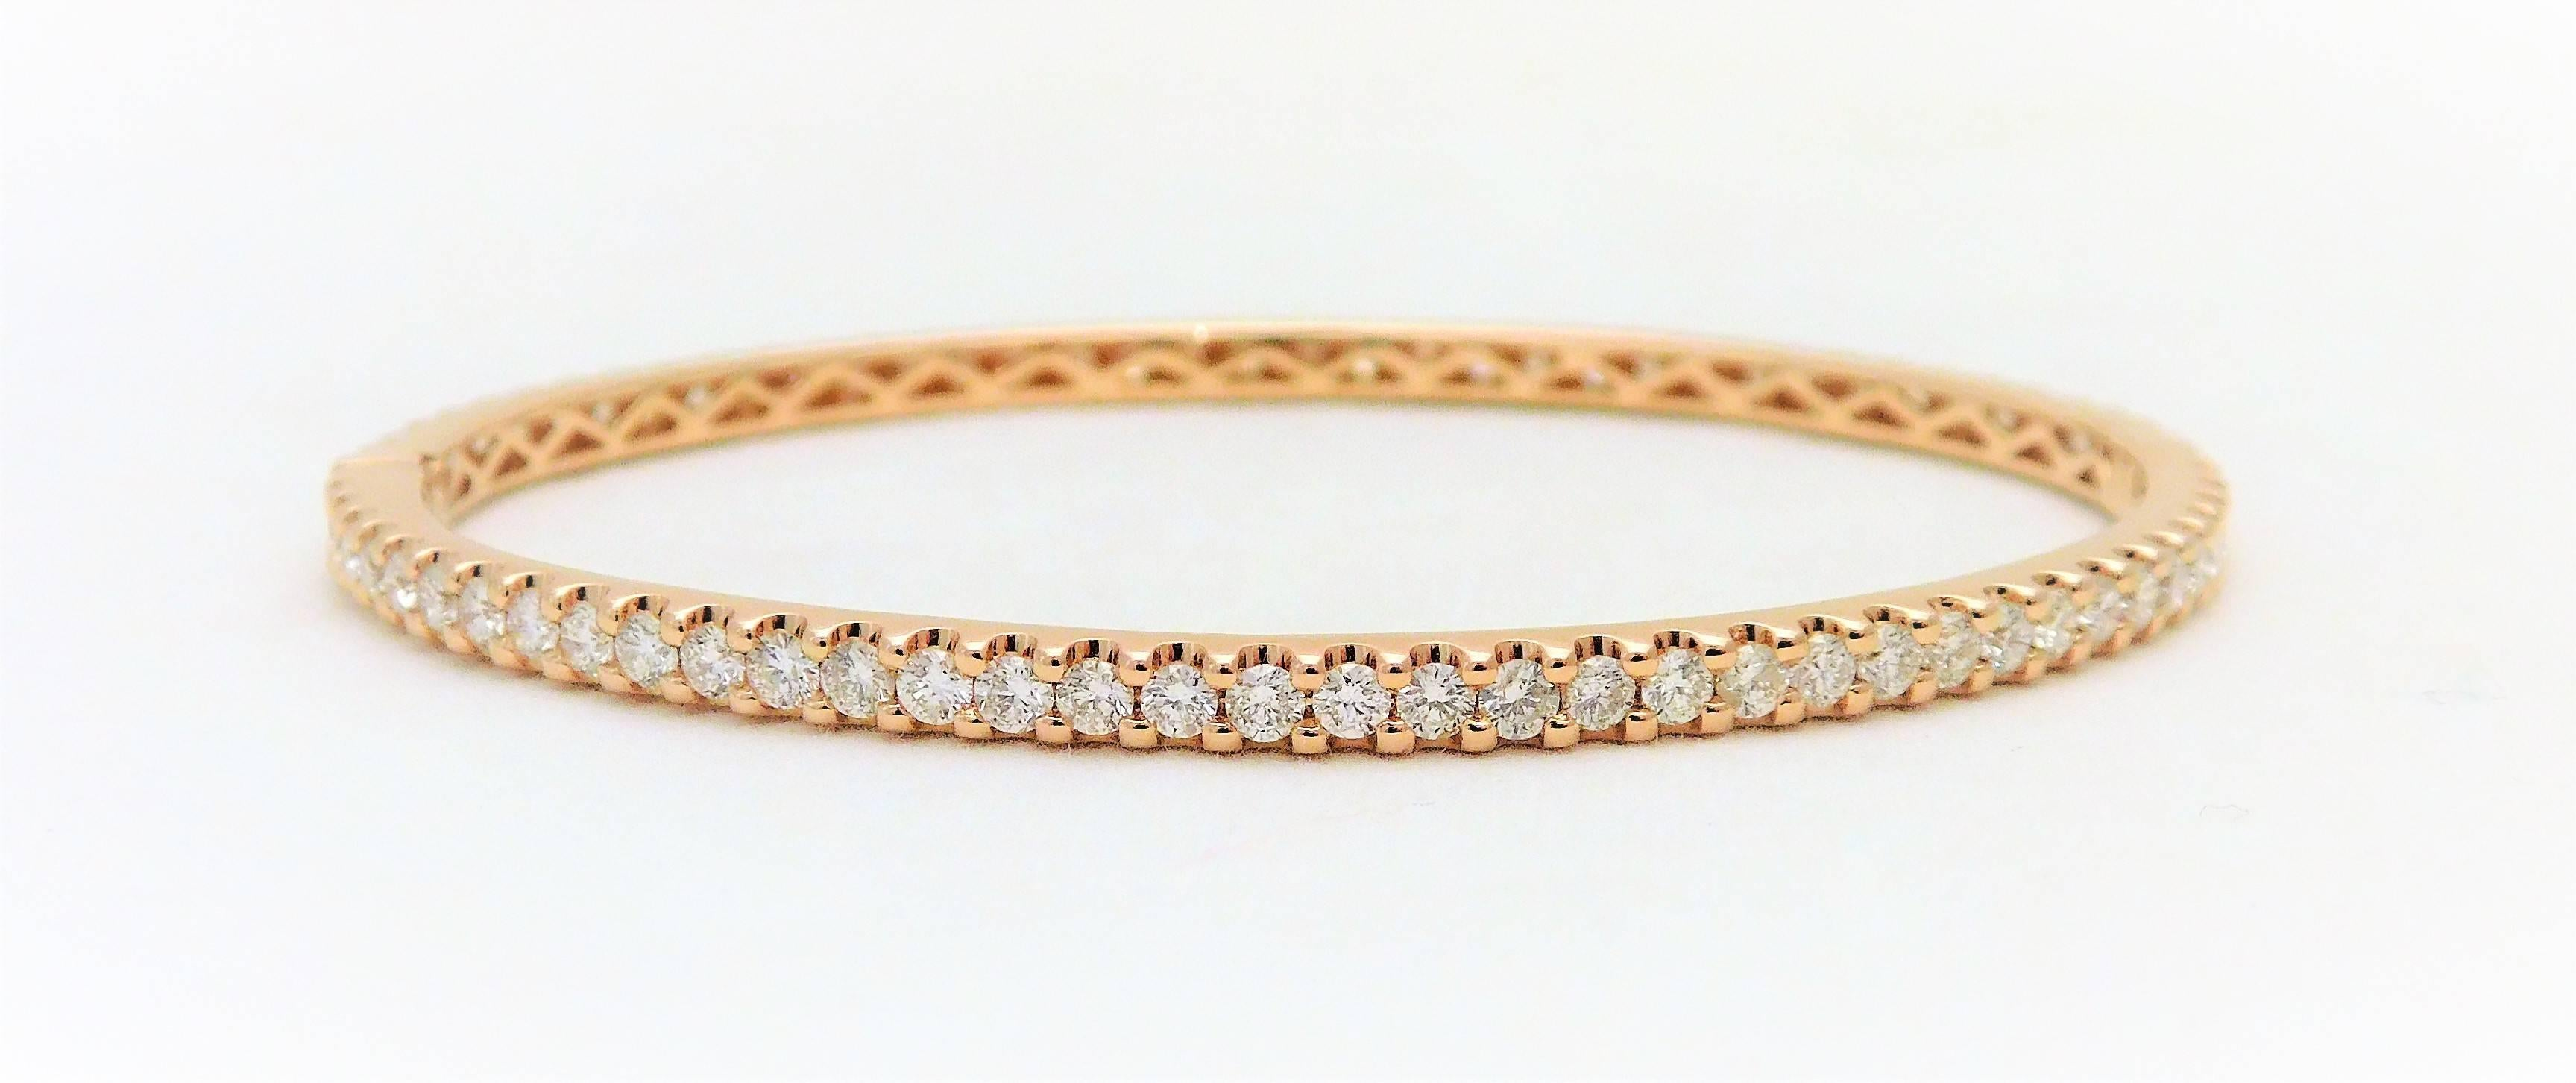 eternity product number jones gold bracelet bracelets l diamonds webstore diamond tennis white category ernest